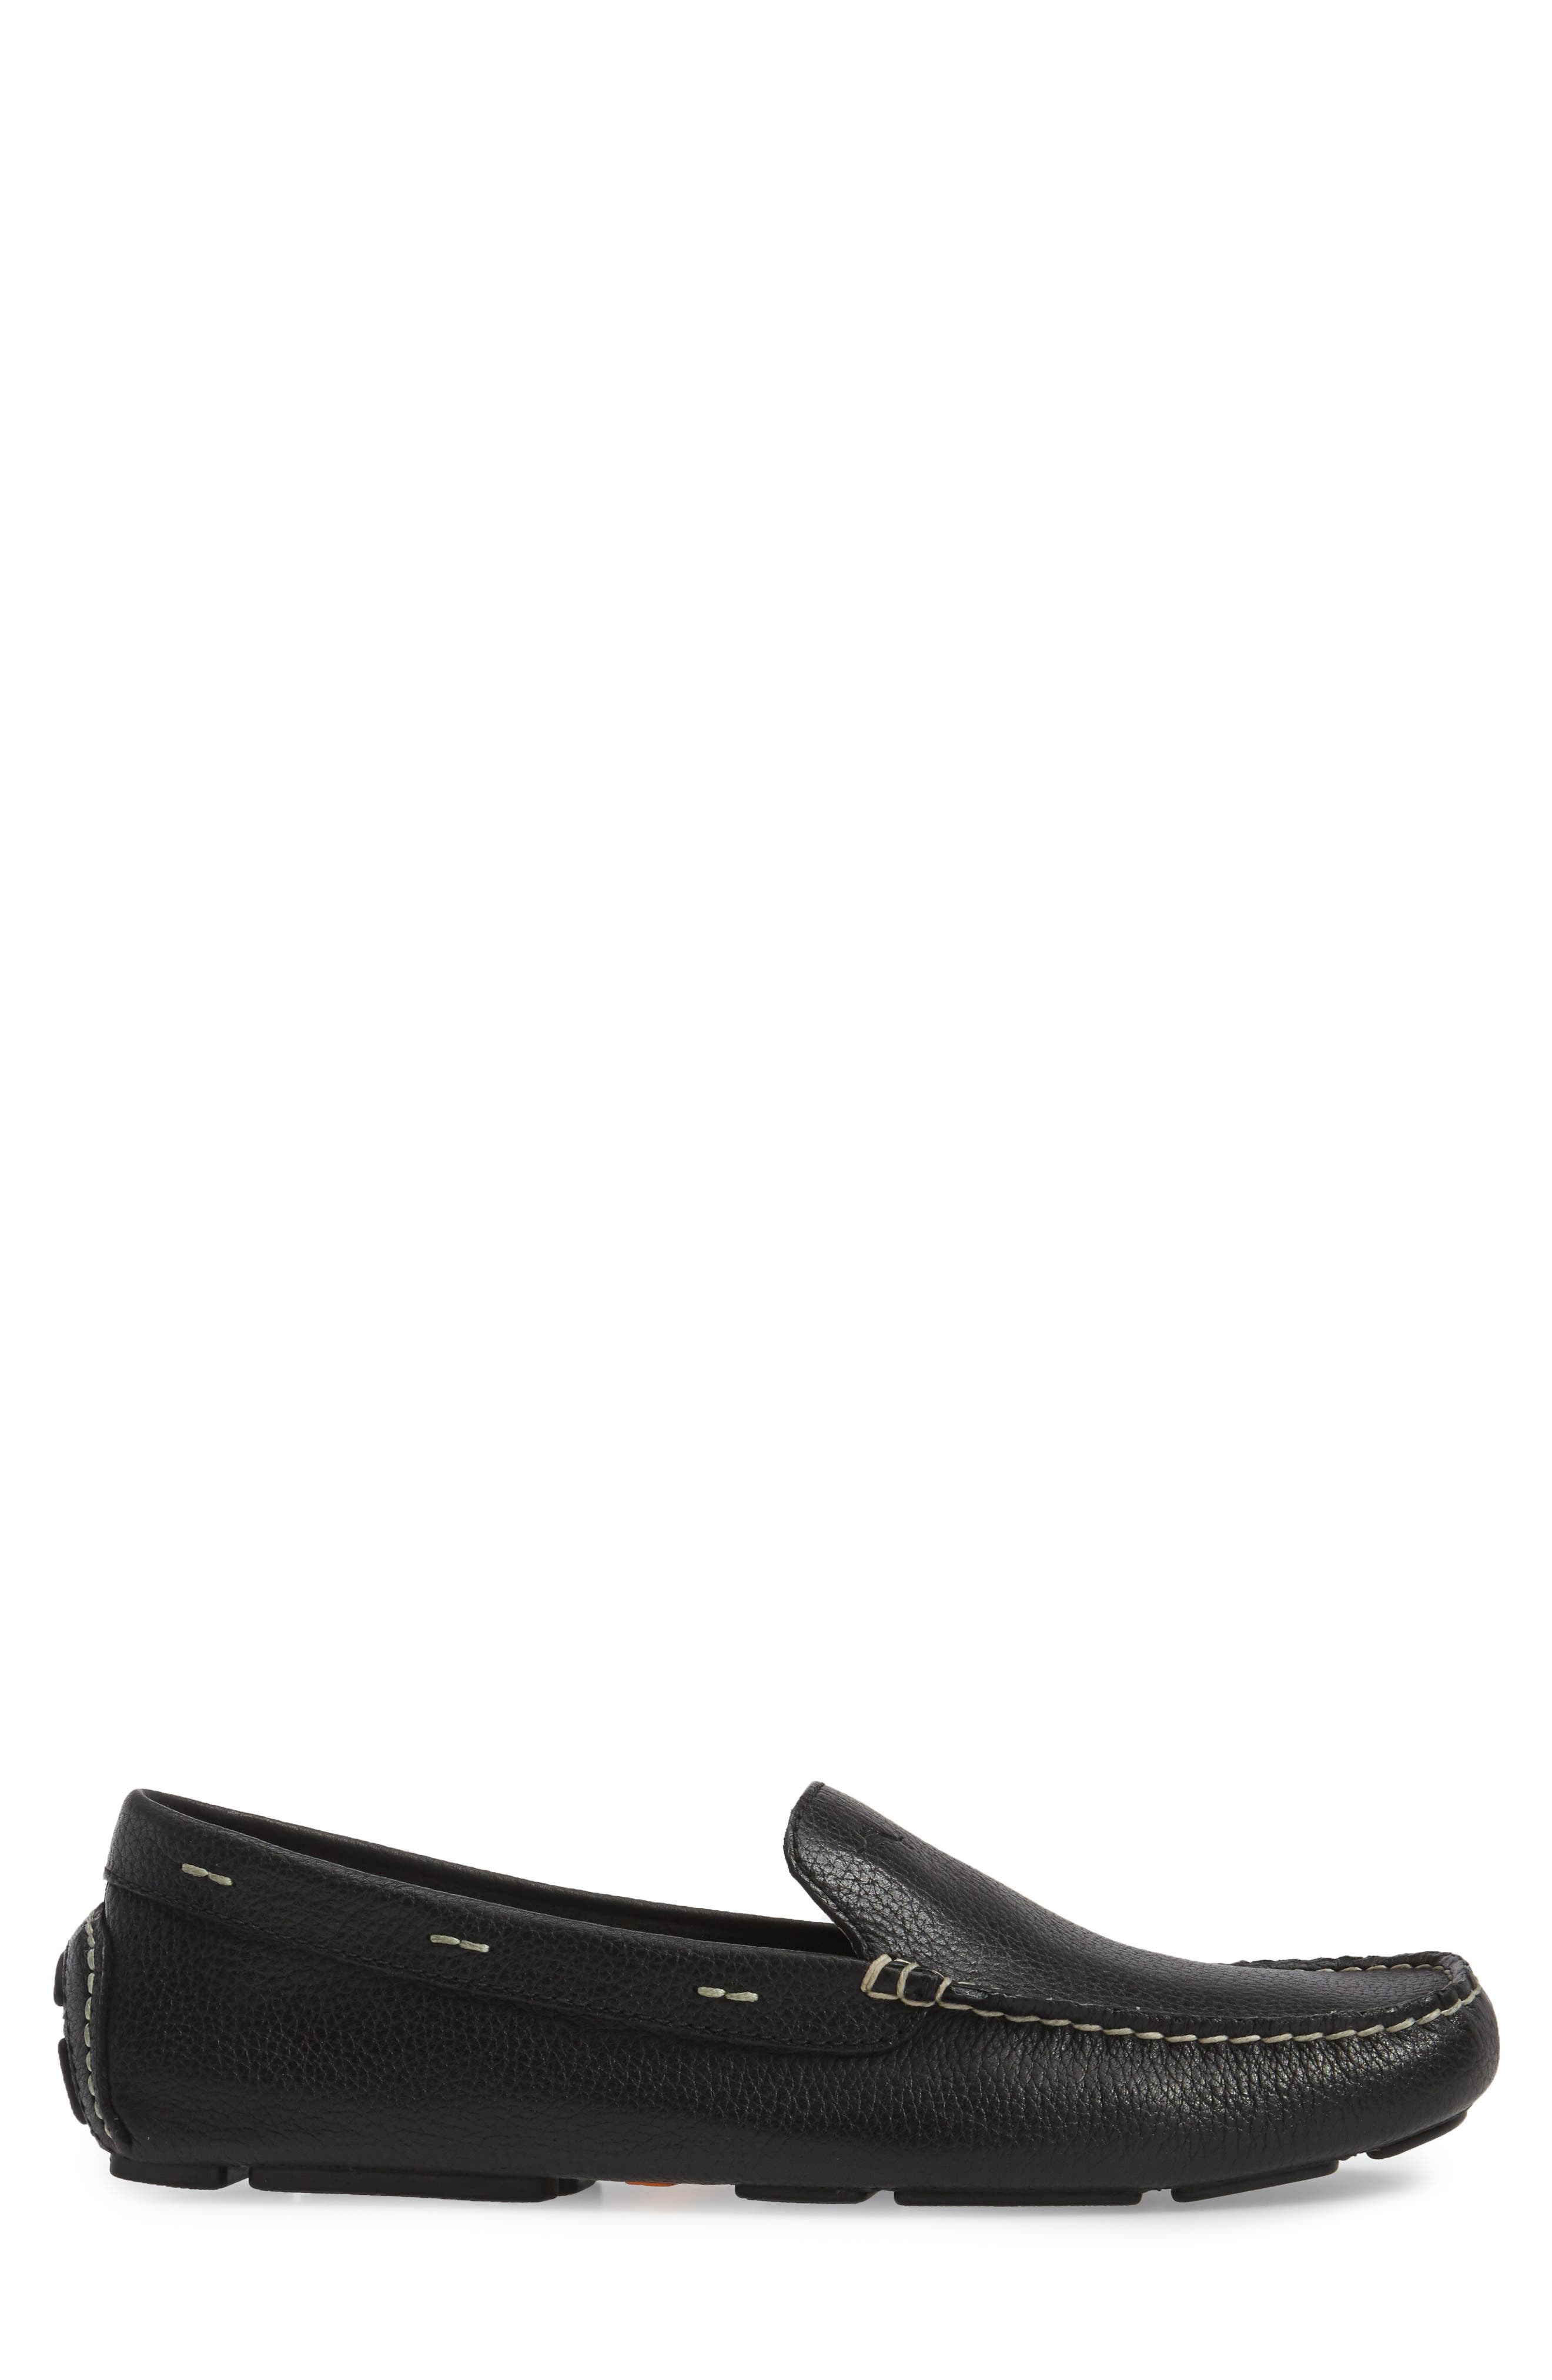 Pagota Driving Loafer,                             Alternate thumbnail 3, color,                             BLACK LEATHER